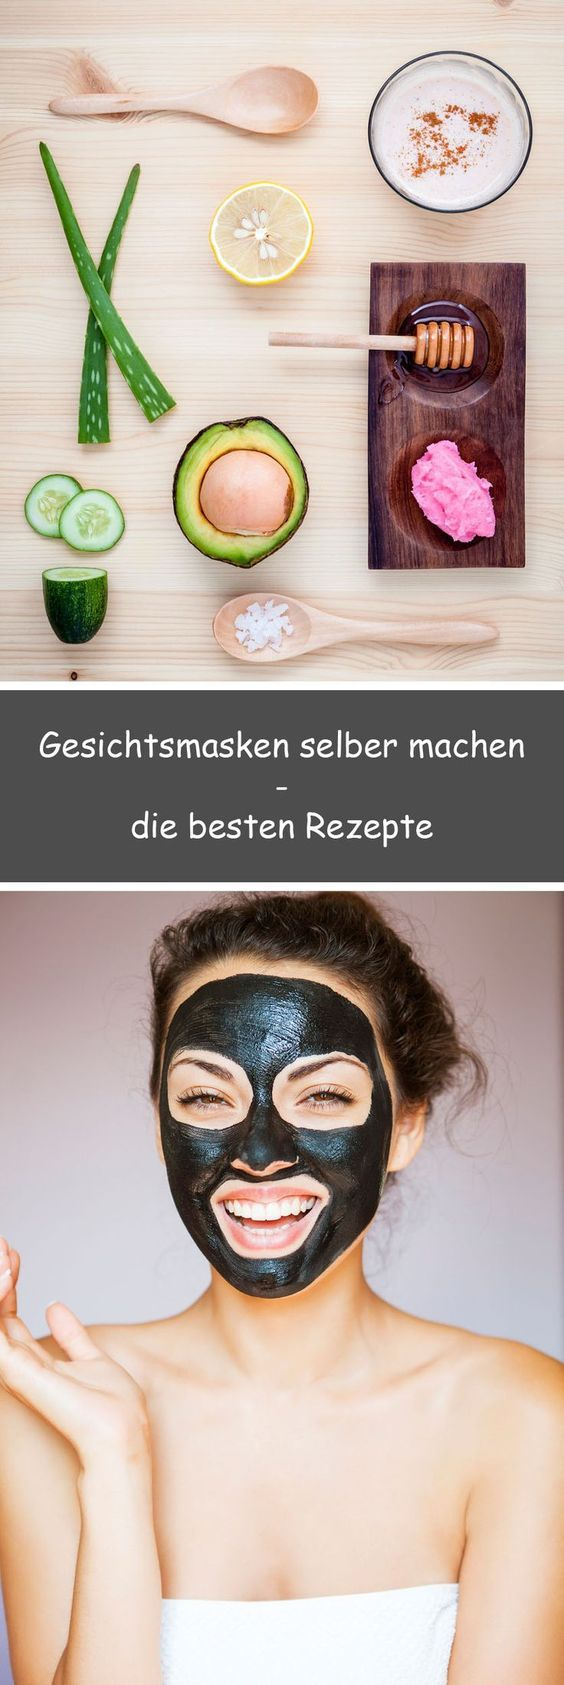 die besten 25 masken ideen auf pinterest k nstlerische portr tfotografie serien f r frauen. Black Bedroom Furniture Sets. Home Design Ideas